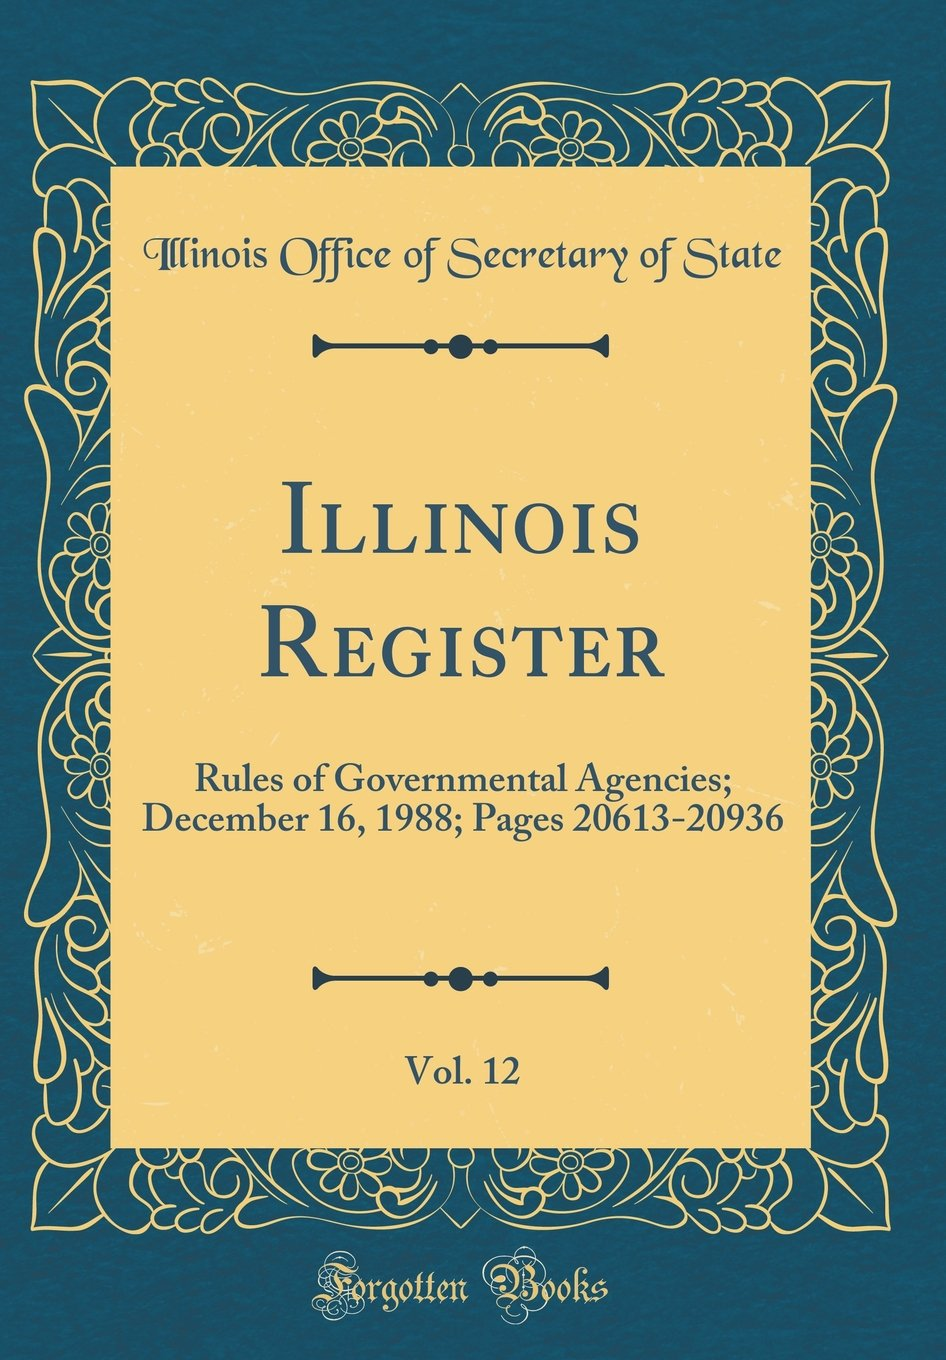 Download Illinois Register, Vol. 12: Rules of Governmental Agencies; December 16, 1988; Pages 20613-20936 (Classic Reprint) pdf epub